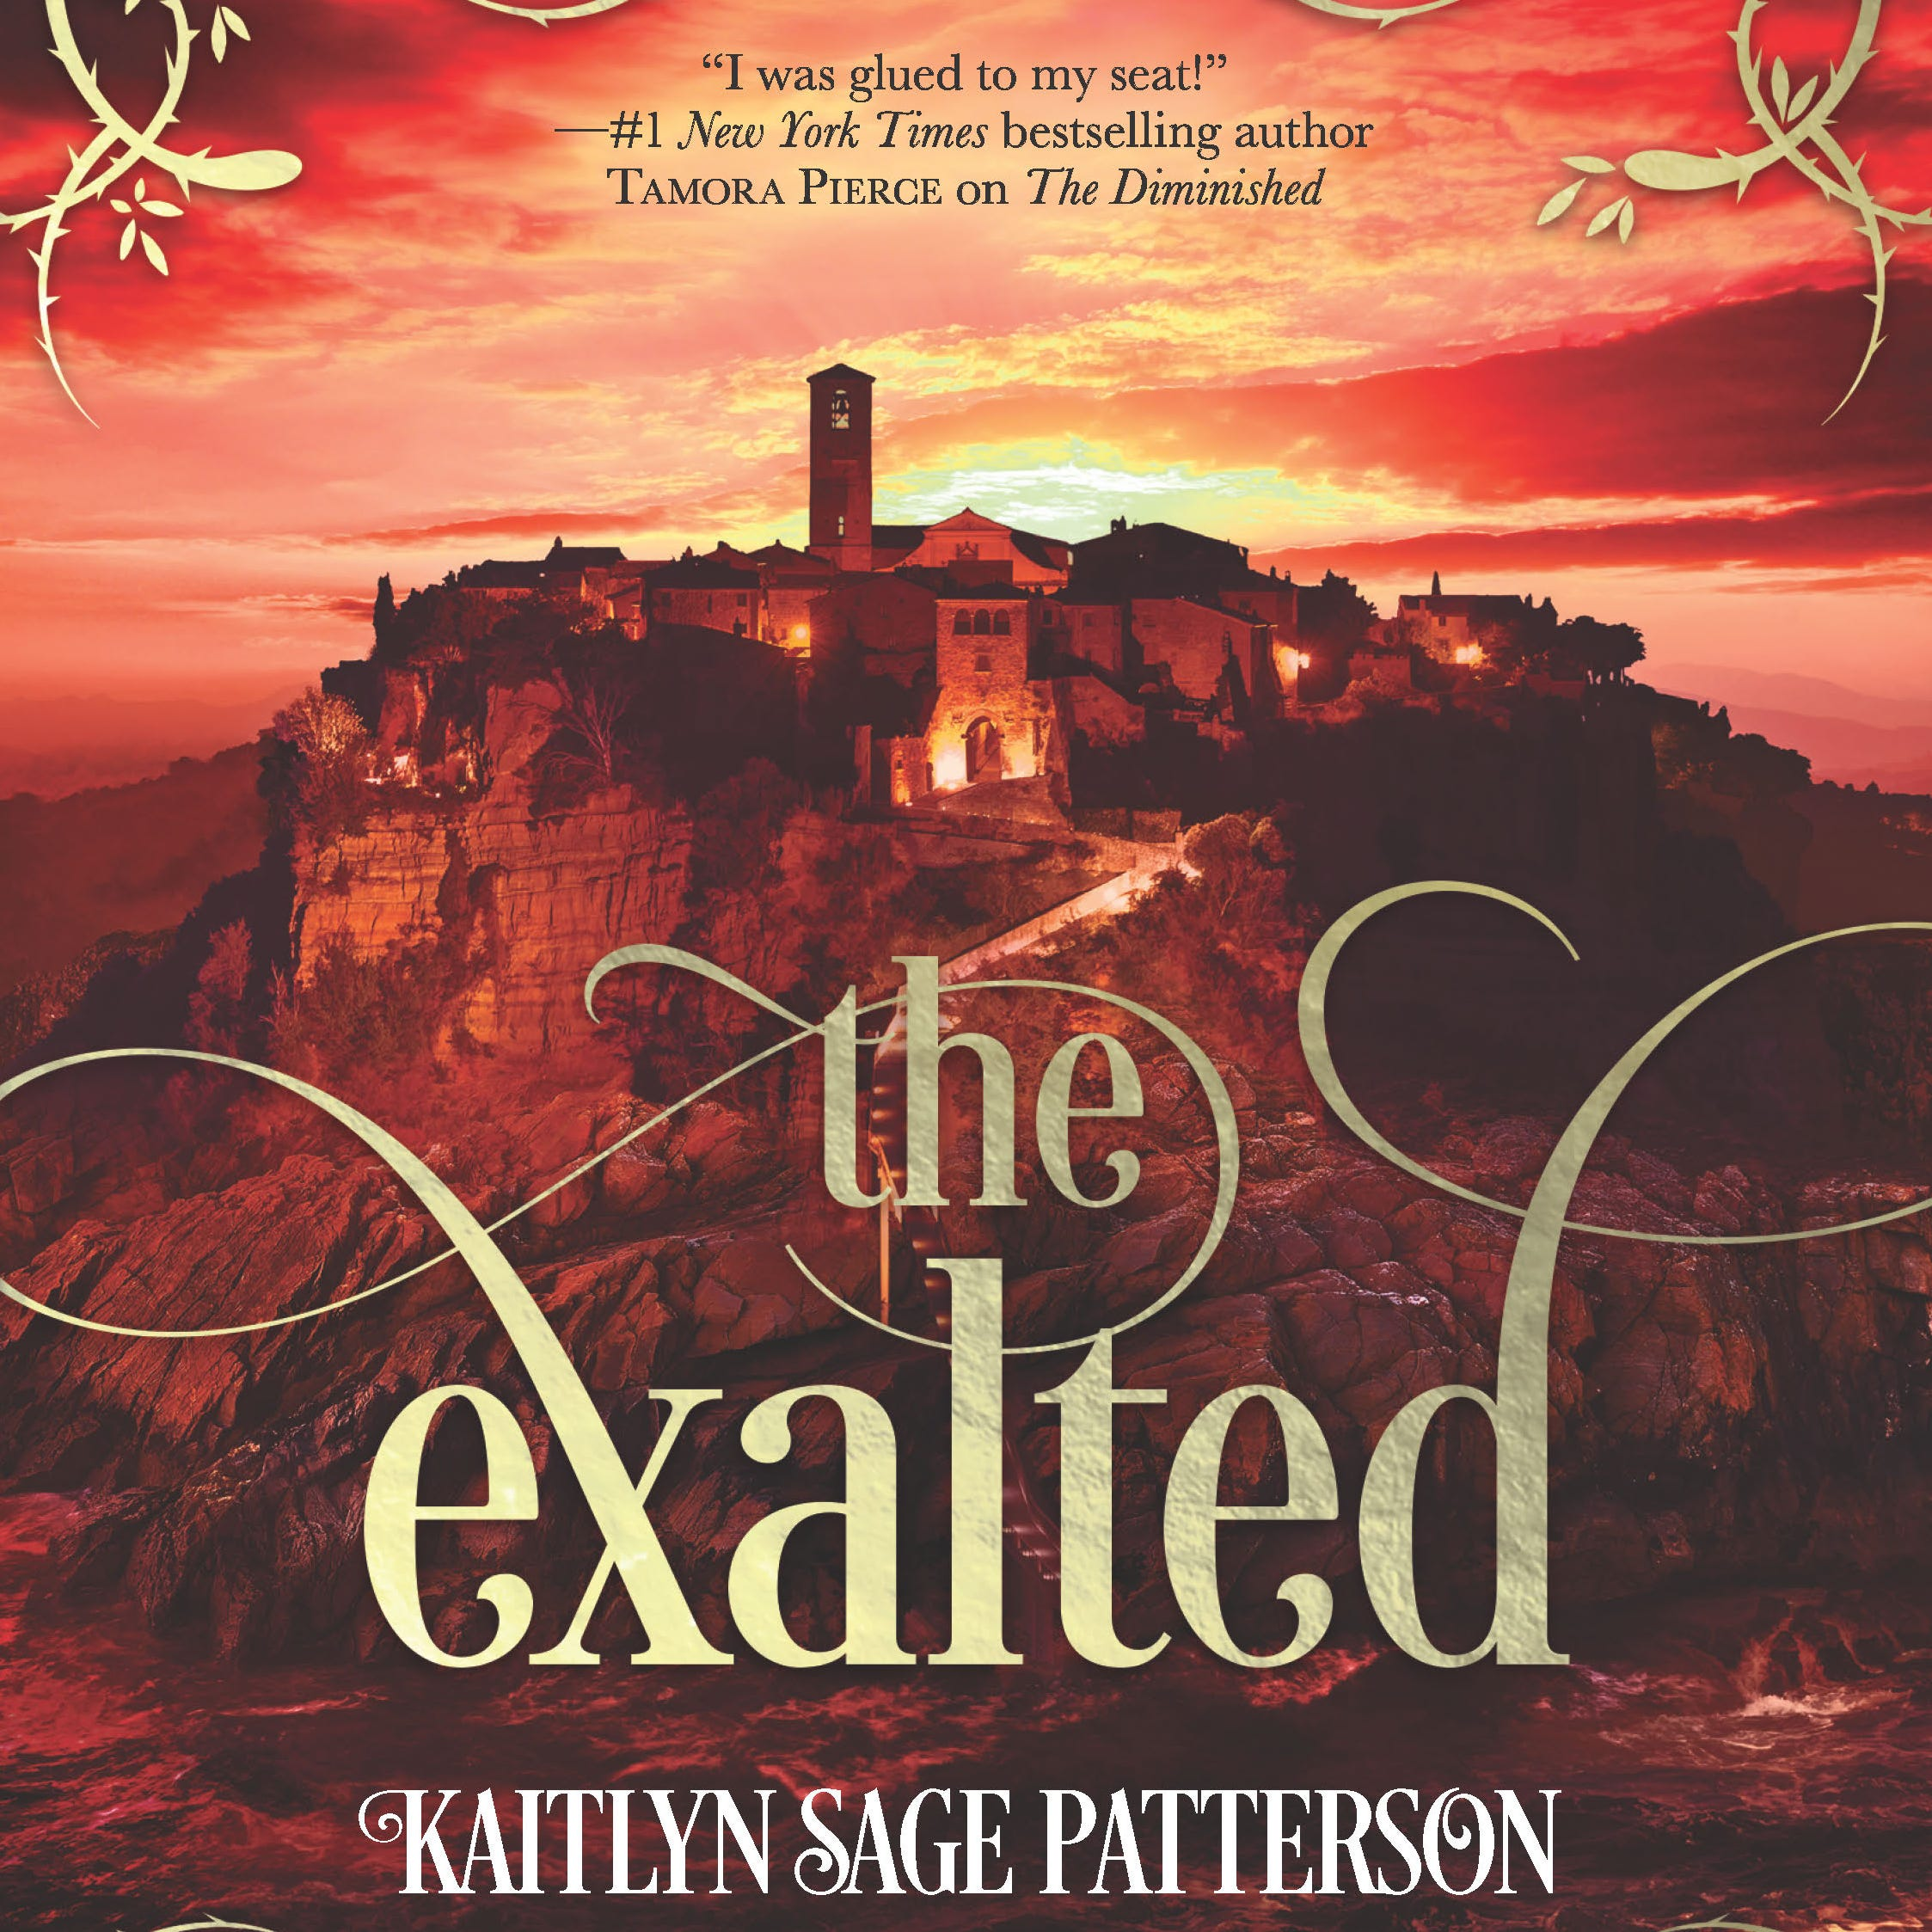 Twins fight for justice in Kaitlyn Sage Patterson's latest YA fantasy